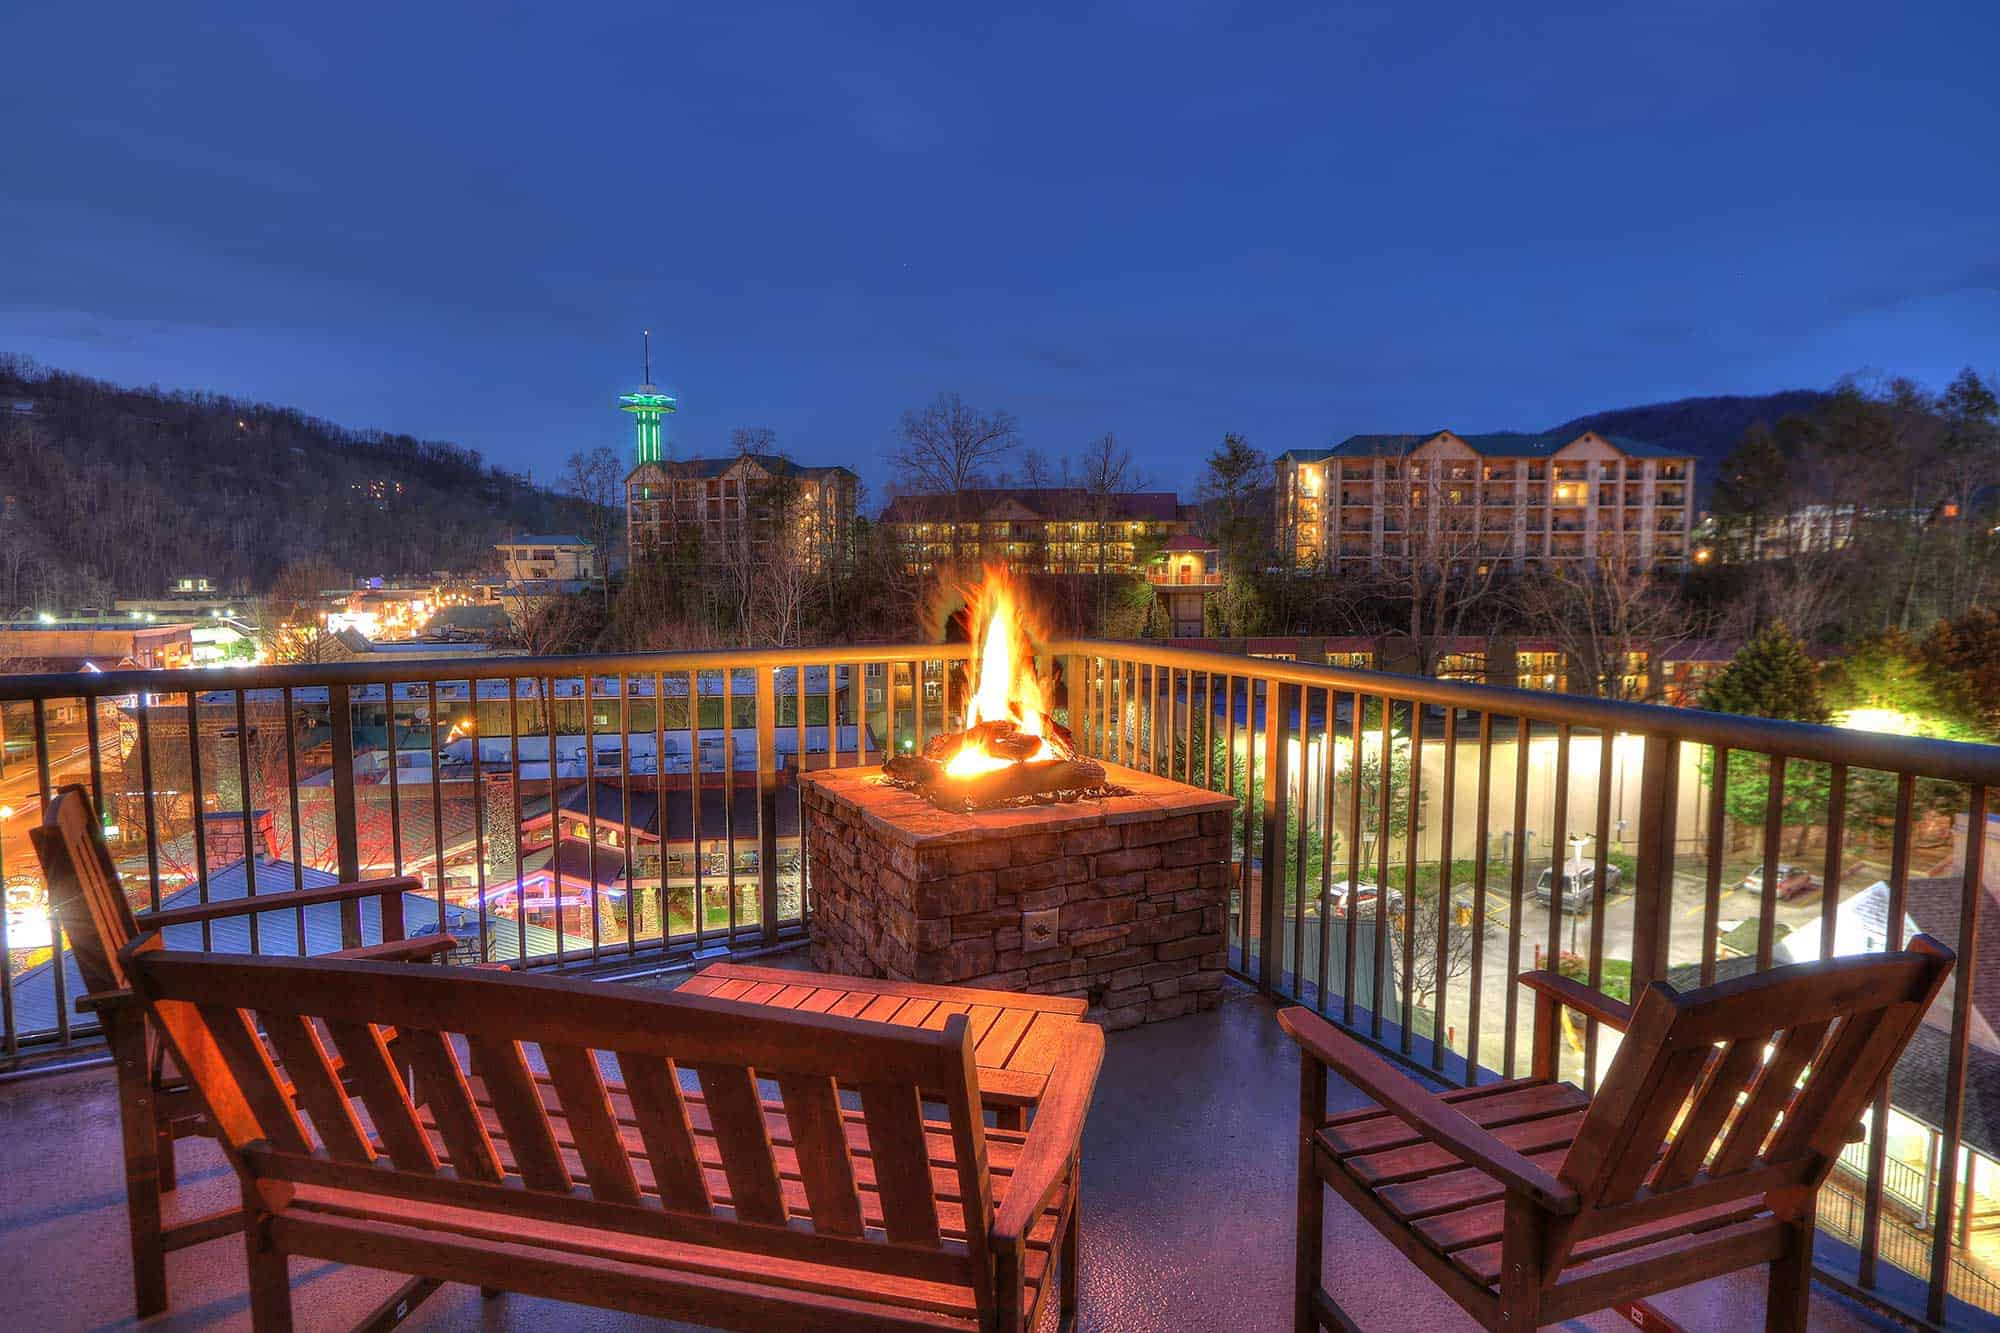 Evening view of Gatlinburg from balcony with fire pit